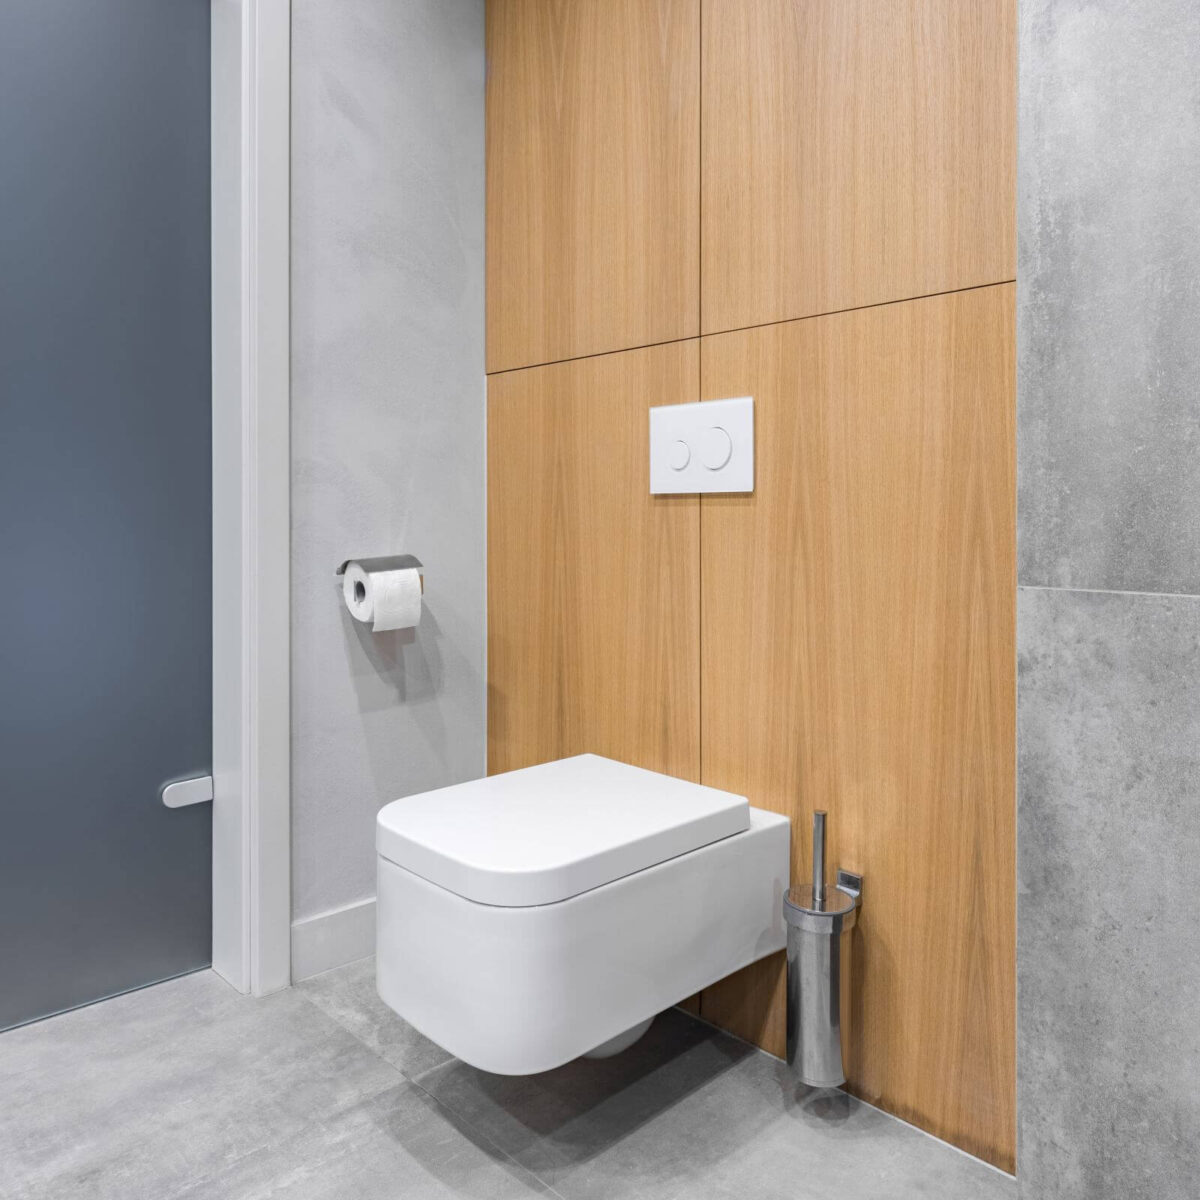 Gray bathroom with white toilet, and modern tiling with wooden details